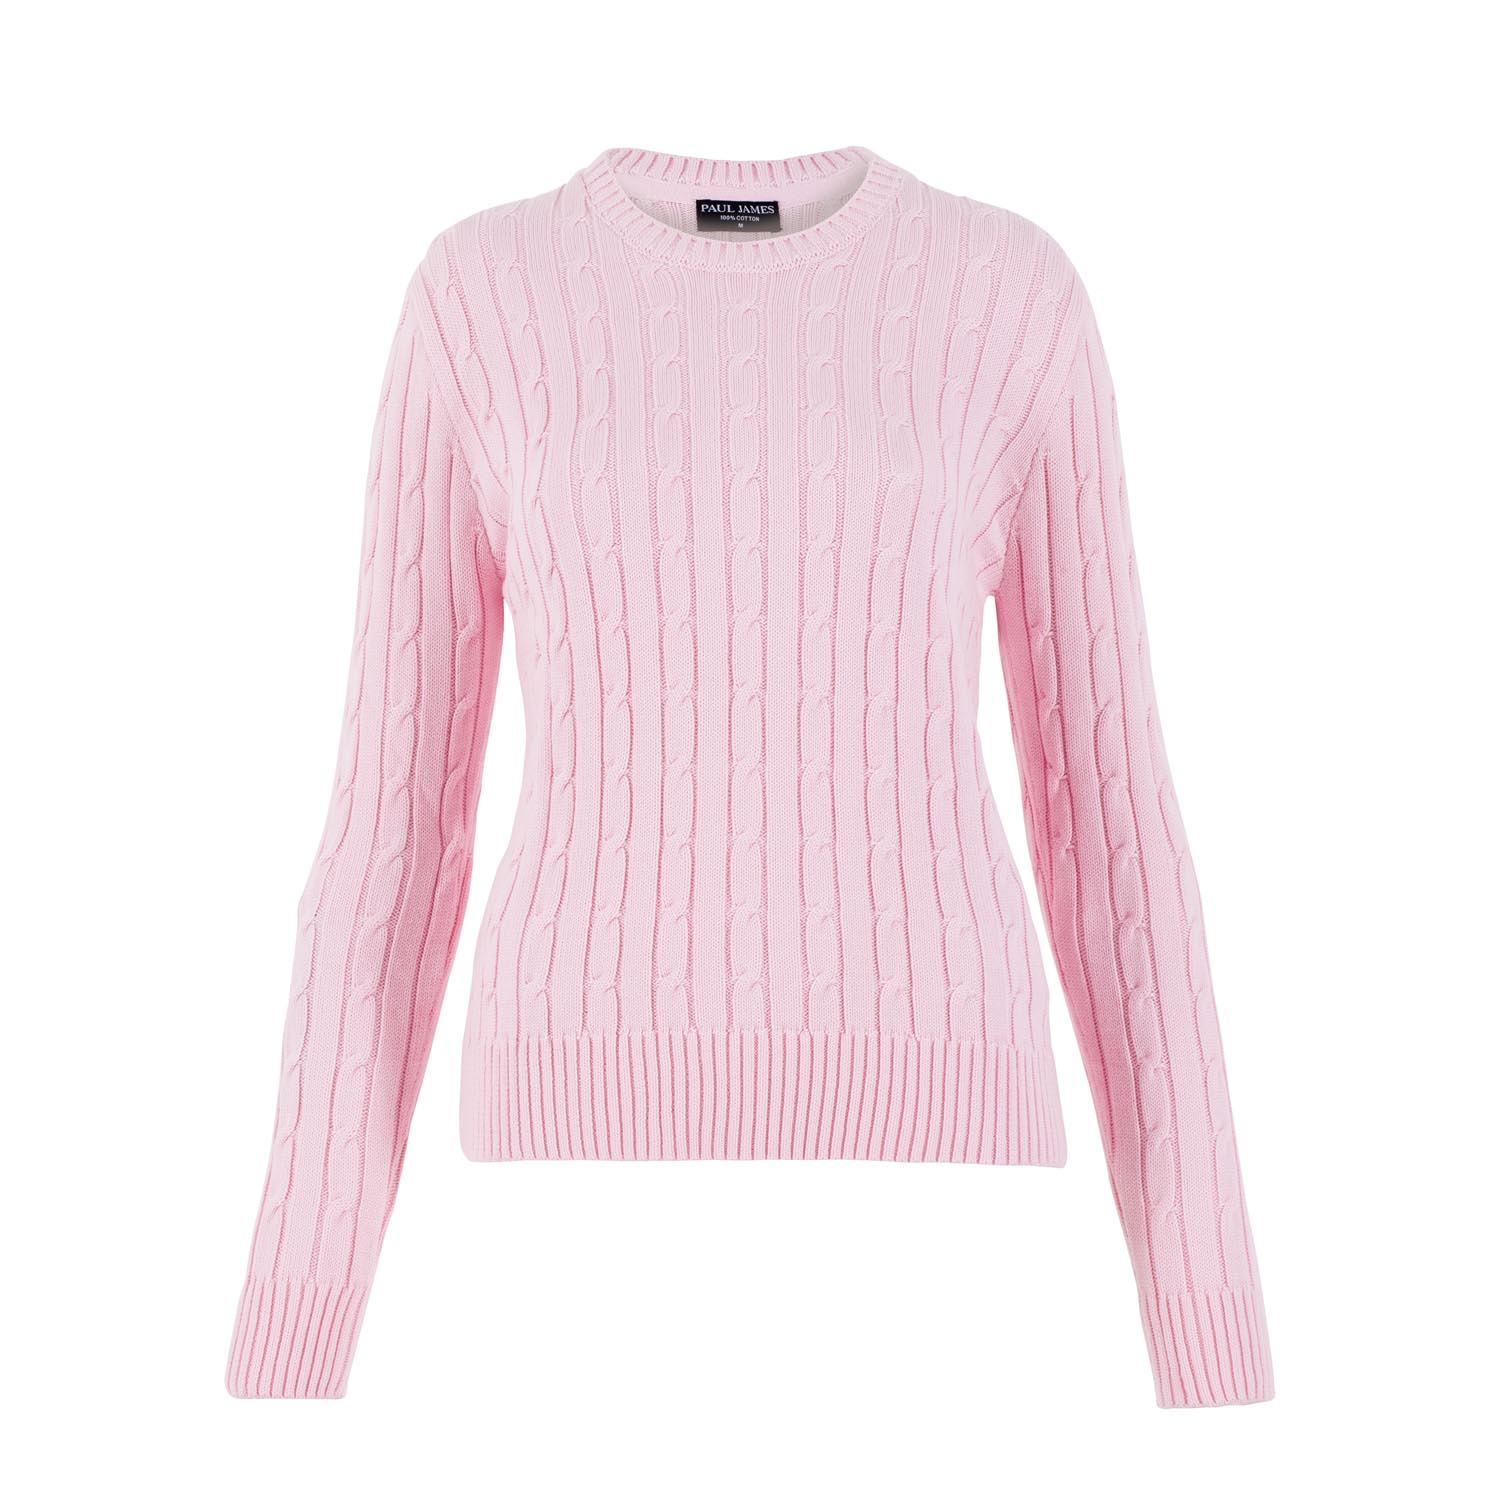 Cotton Cable Jumper Lightweight Ideal For Your Summer